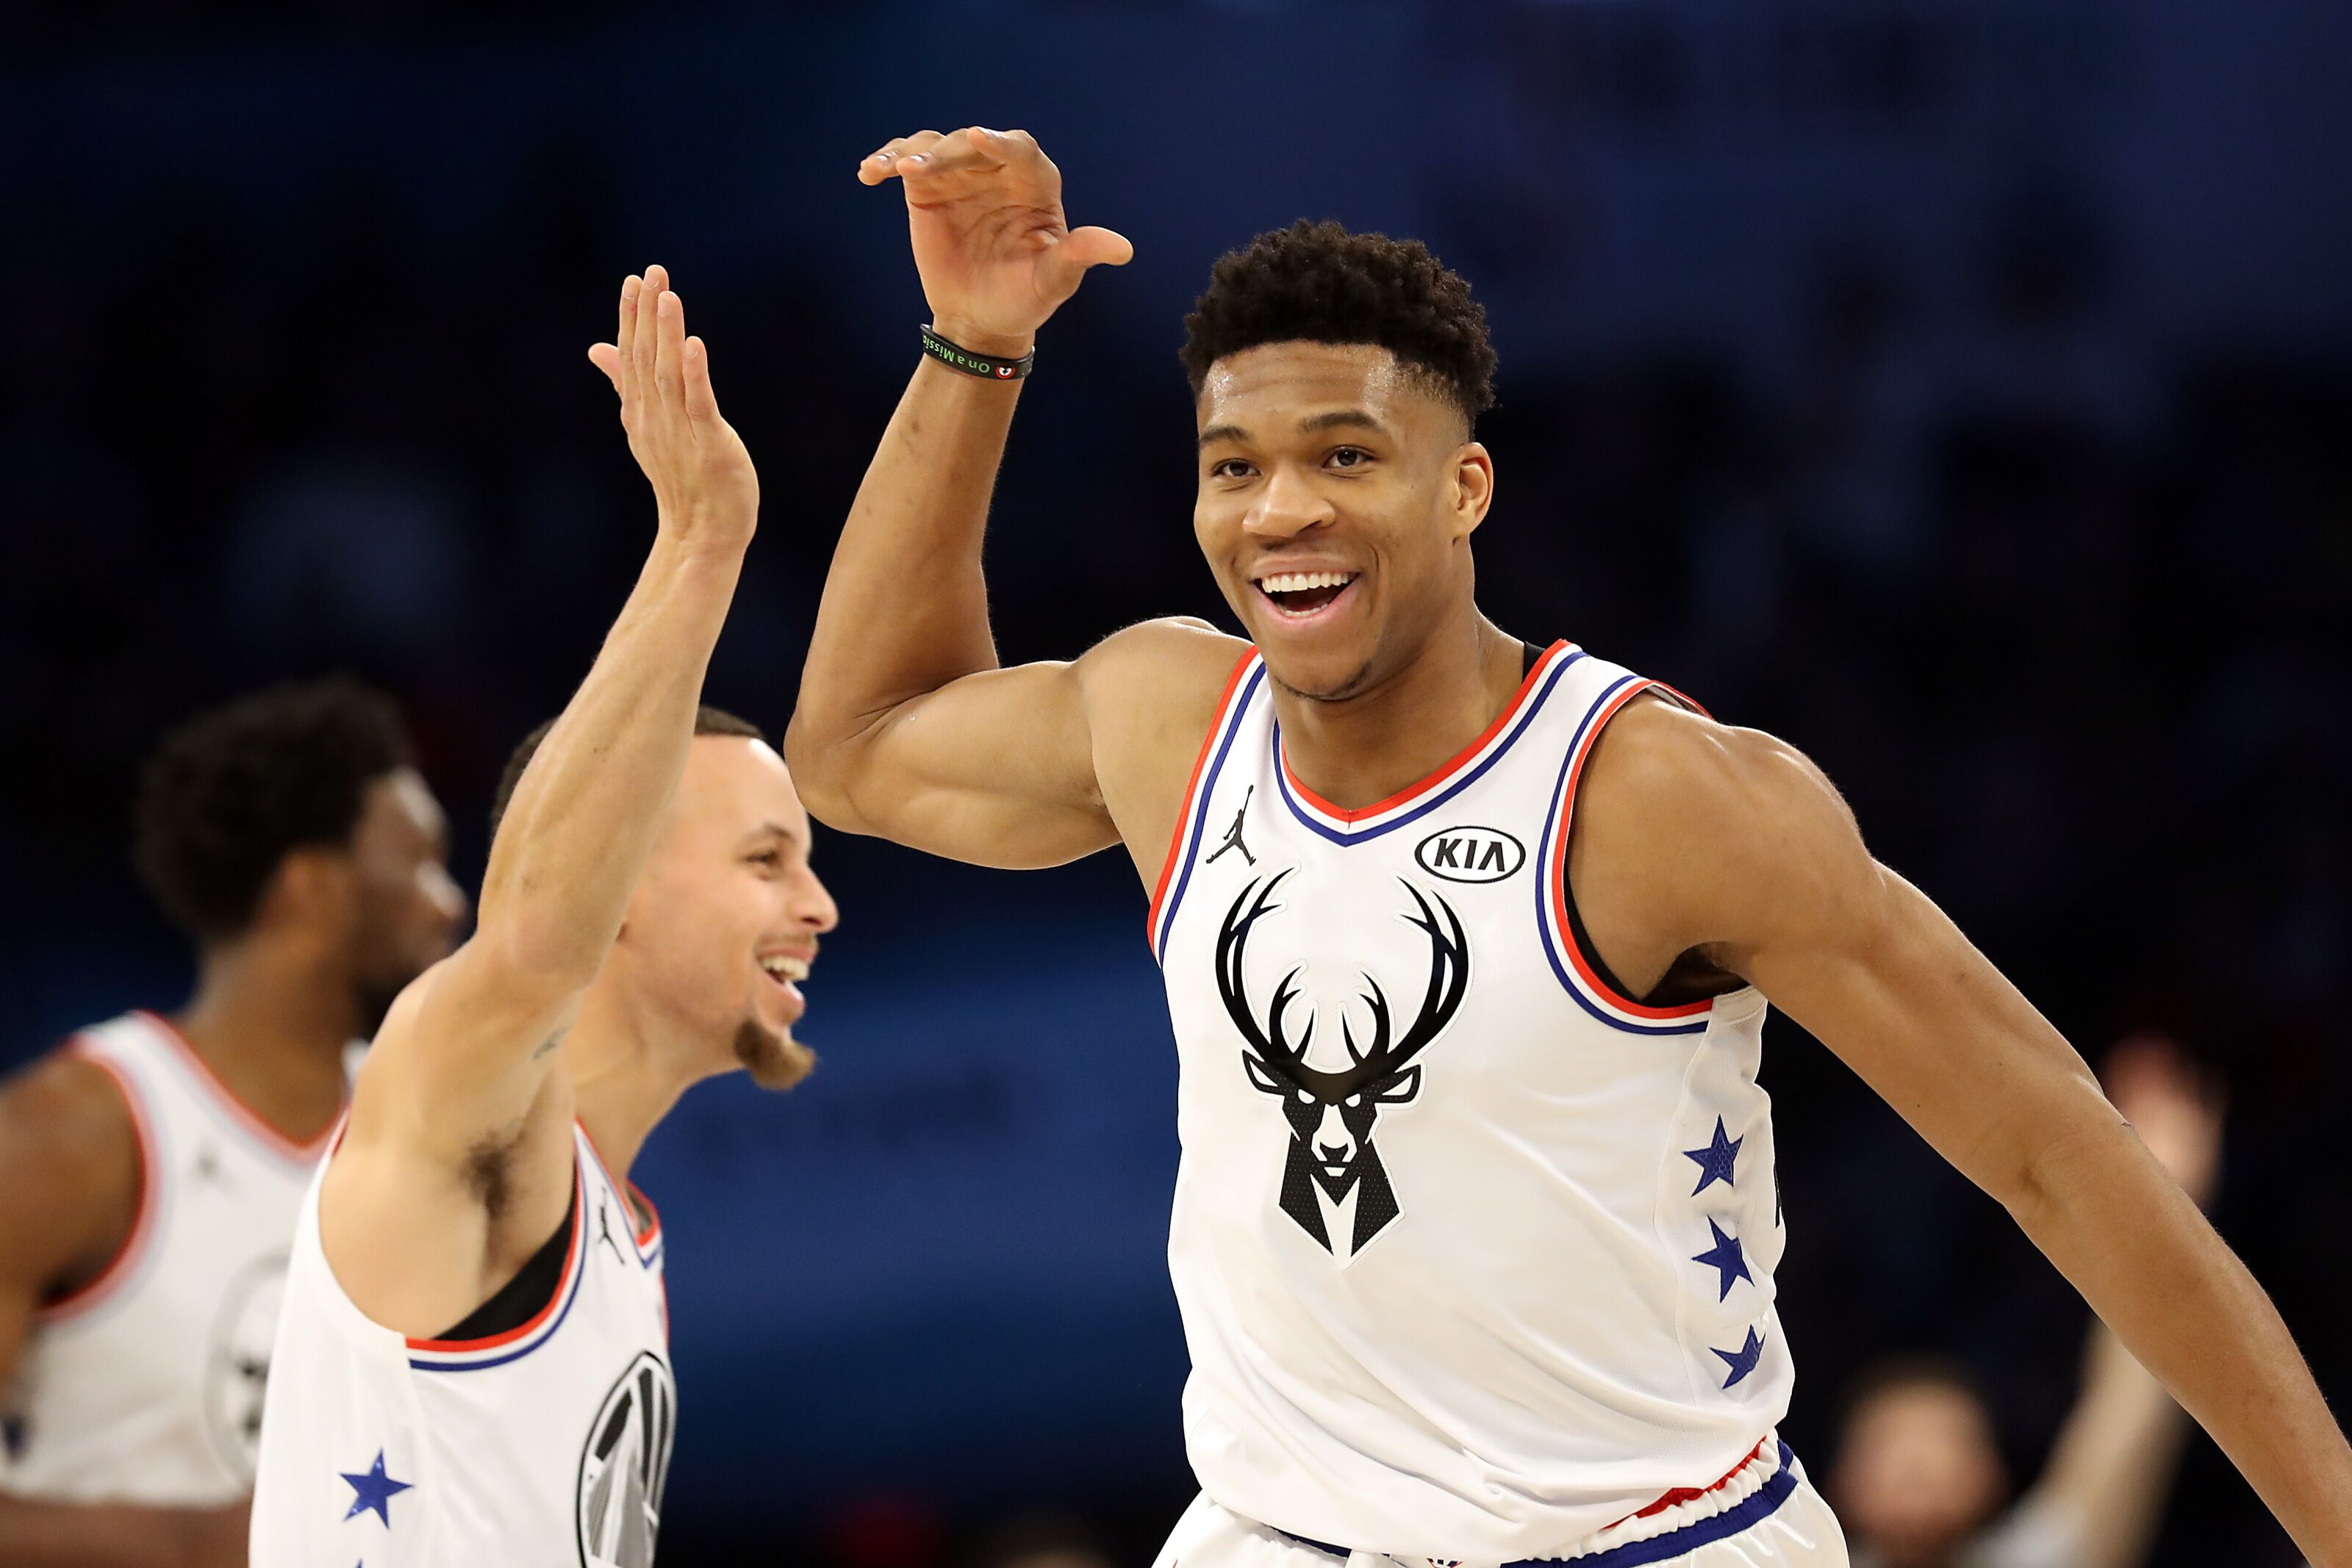 Giannis Antetokounmpo x Nike to drop during NBA Playoffs